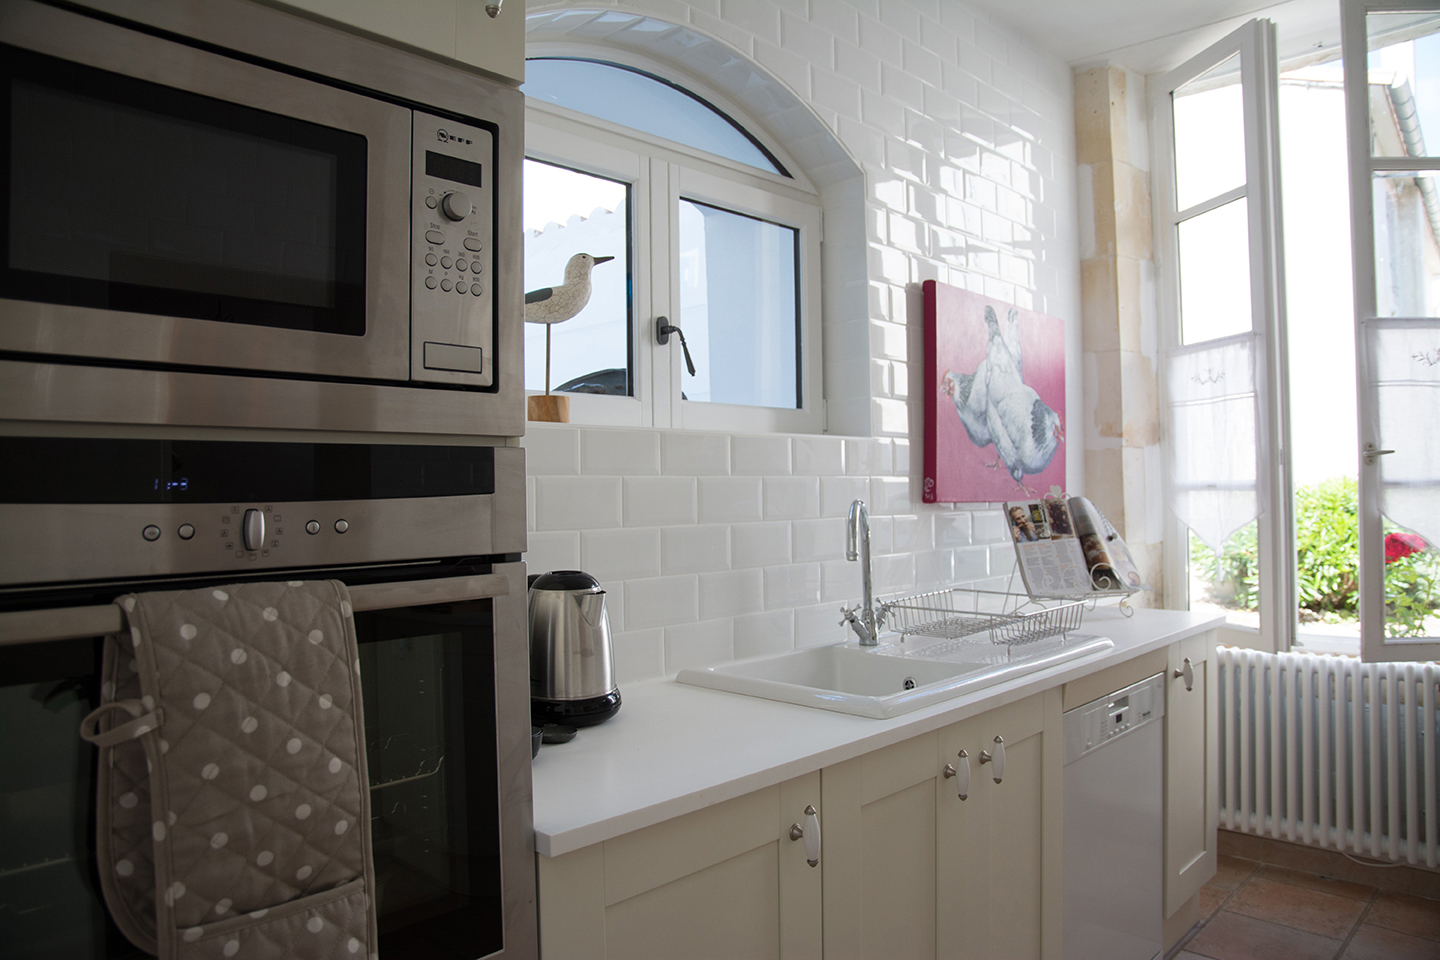 st-martin-de-re-house-to-rent-kitchen